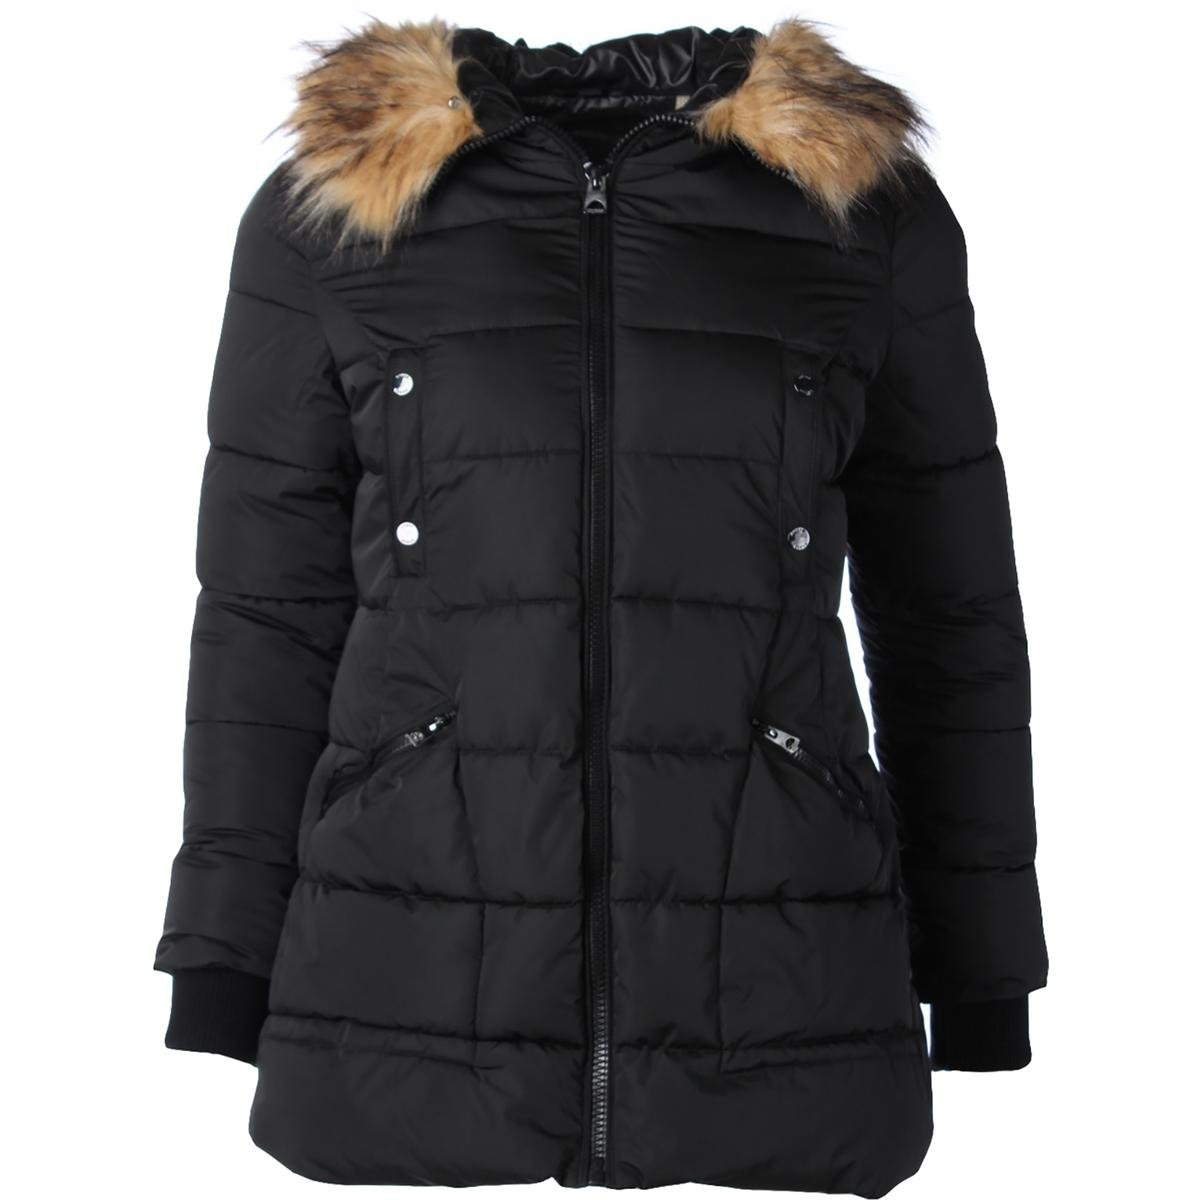 GUESS Womens Quilted Parka Coat Black XL